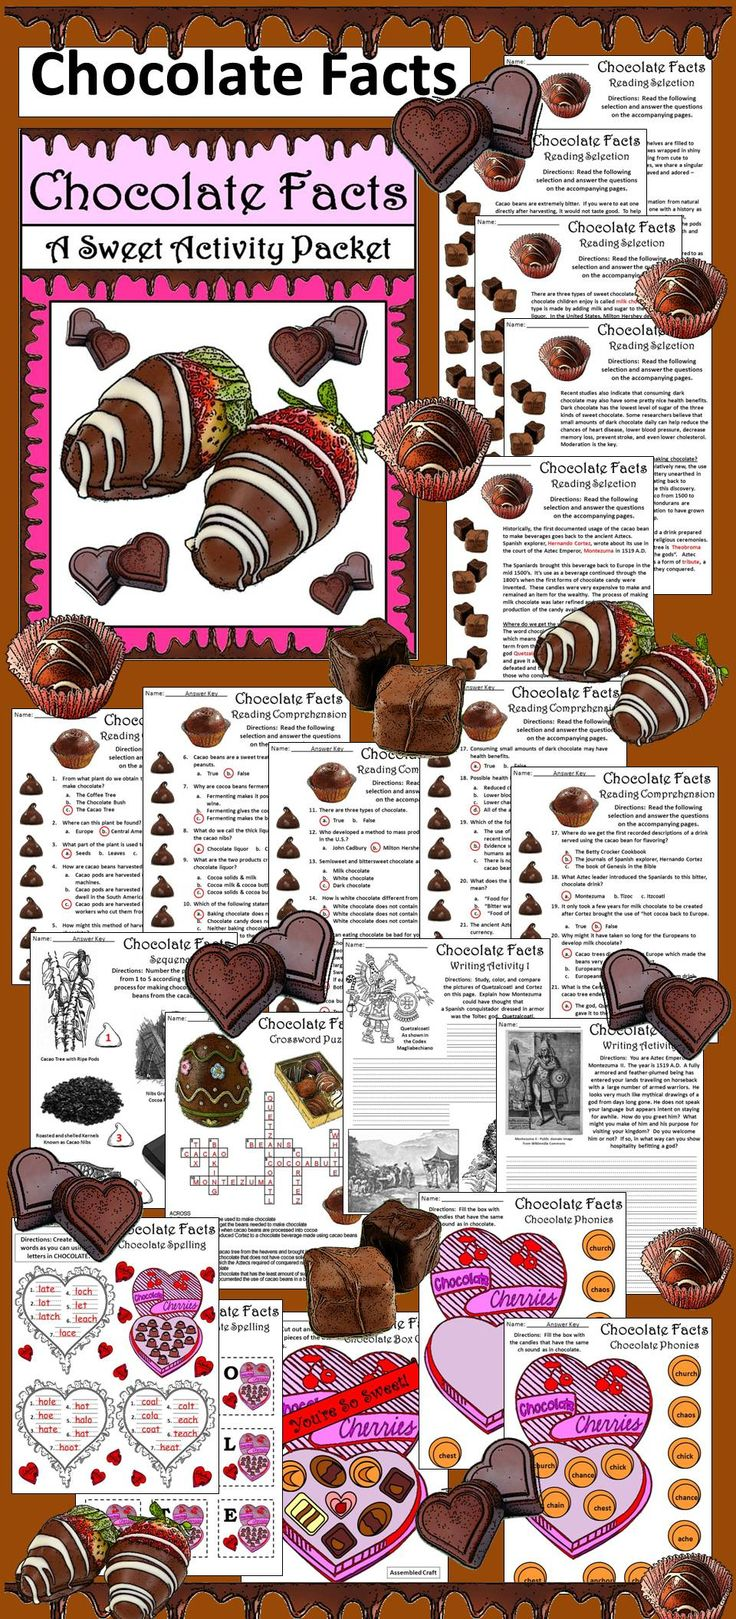 Chocolate Facts Activity Packet: Easter & Valentine's Day activity packet on the history and creation of Chocolate!  Contents include: * Chocolate Facts Reading Selection & Comprehension Quiz * Chocolate Crossword Puzzle * Two Writing Activities * Chocolate Spelling Activity * Two Chocolate Phonics Activity * Box of Chocolates Construction Craft * Basket of Chocolate Craft * Answer Keys #Valentines #Day #Easter #Chocolate #Reading #Language #Arts #History #AnnDickerson #Teacherspayteachers